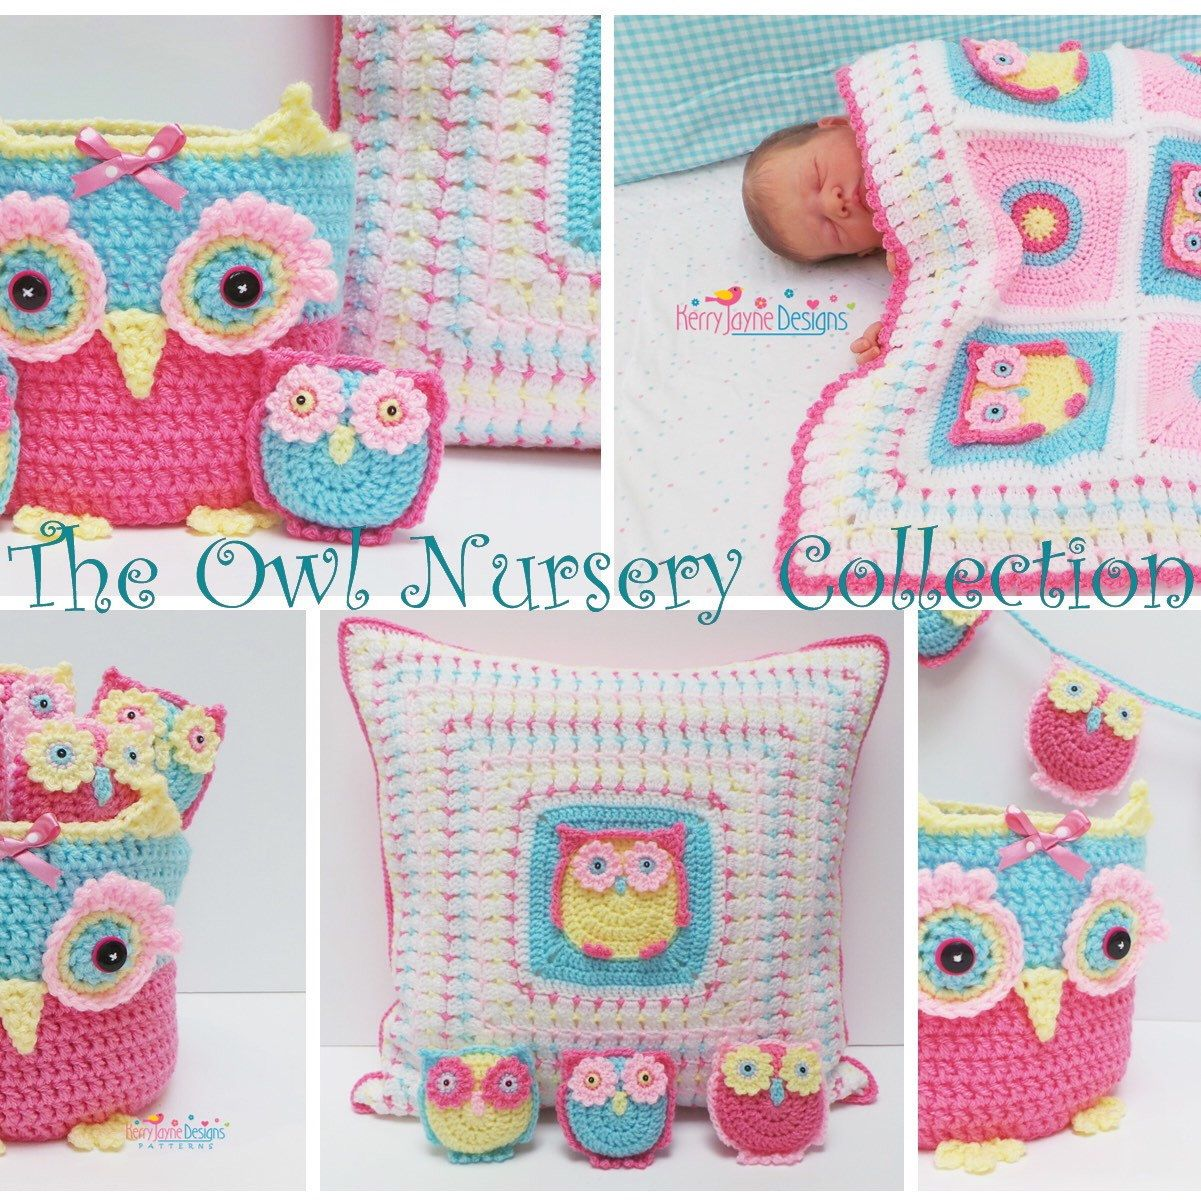 The complete \'Owl Nursery Collection\' in one Crochet pattern Ebook ...